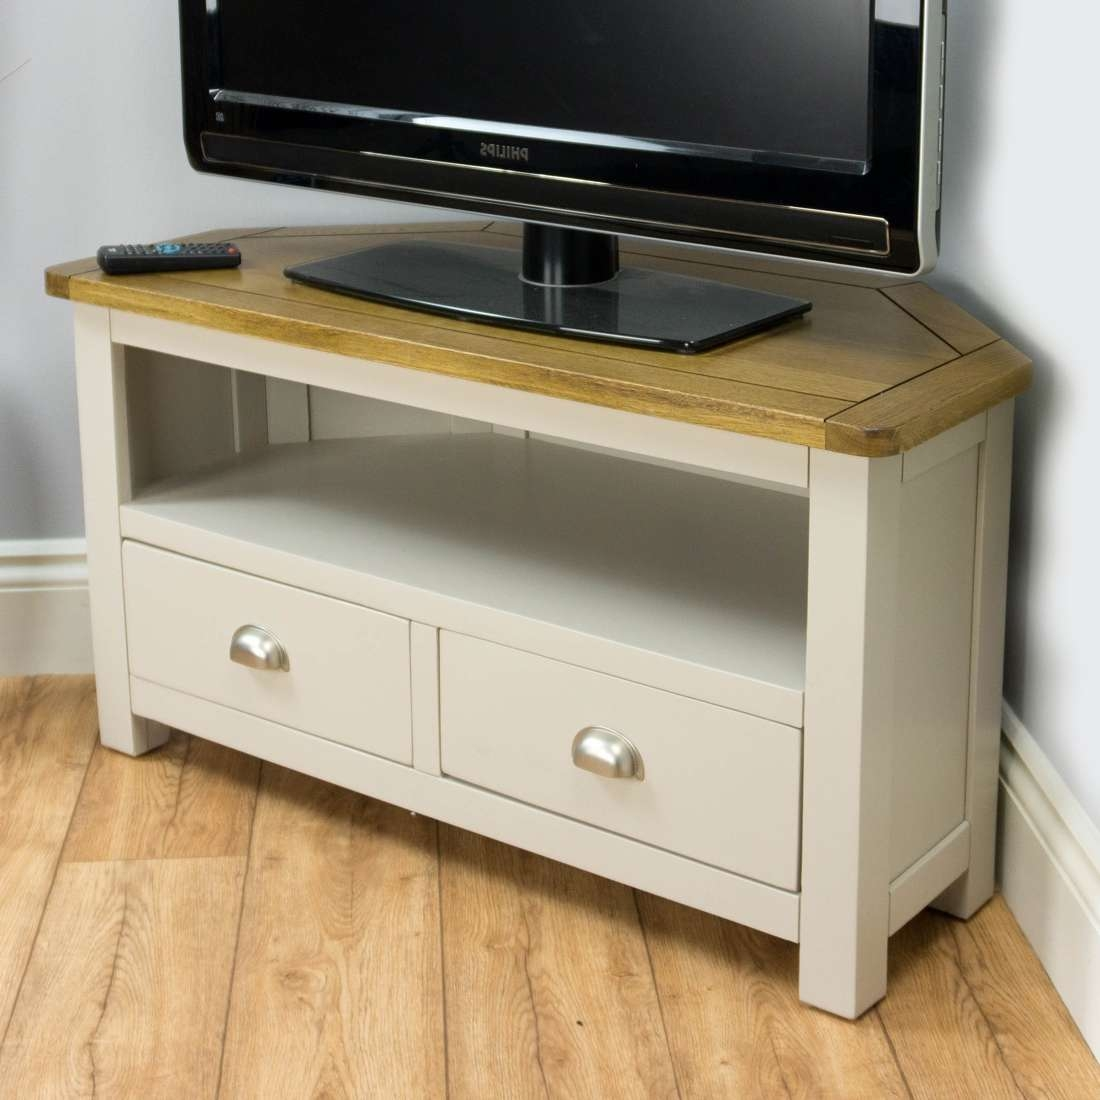 Wellington Oak Corner Tv Unit / Painted Tv Stand / Grey With Solid With Regard To Grey Corner Tv Stands (View 15 of 15)